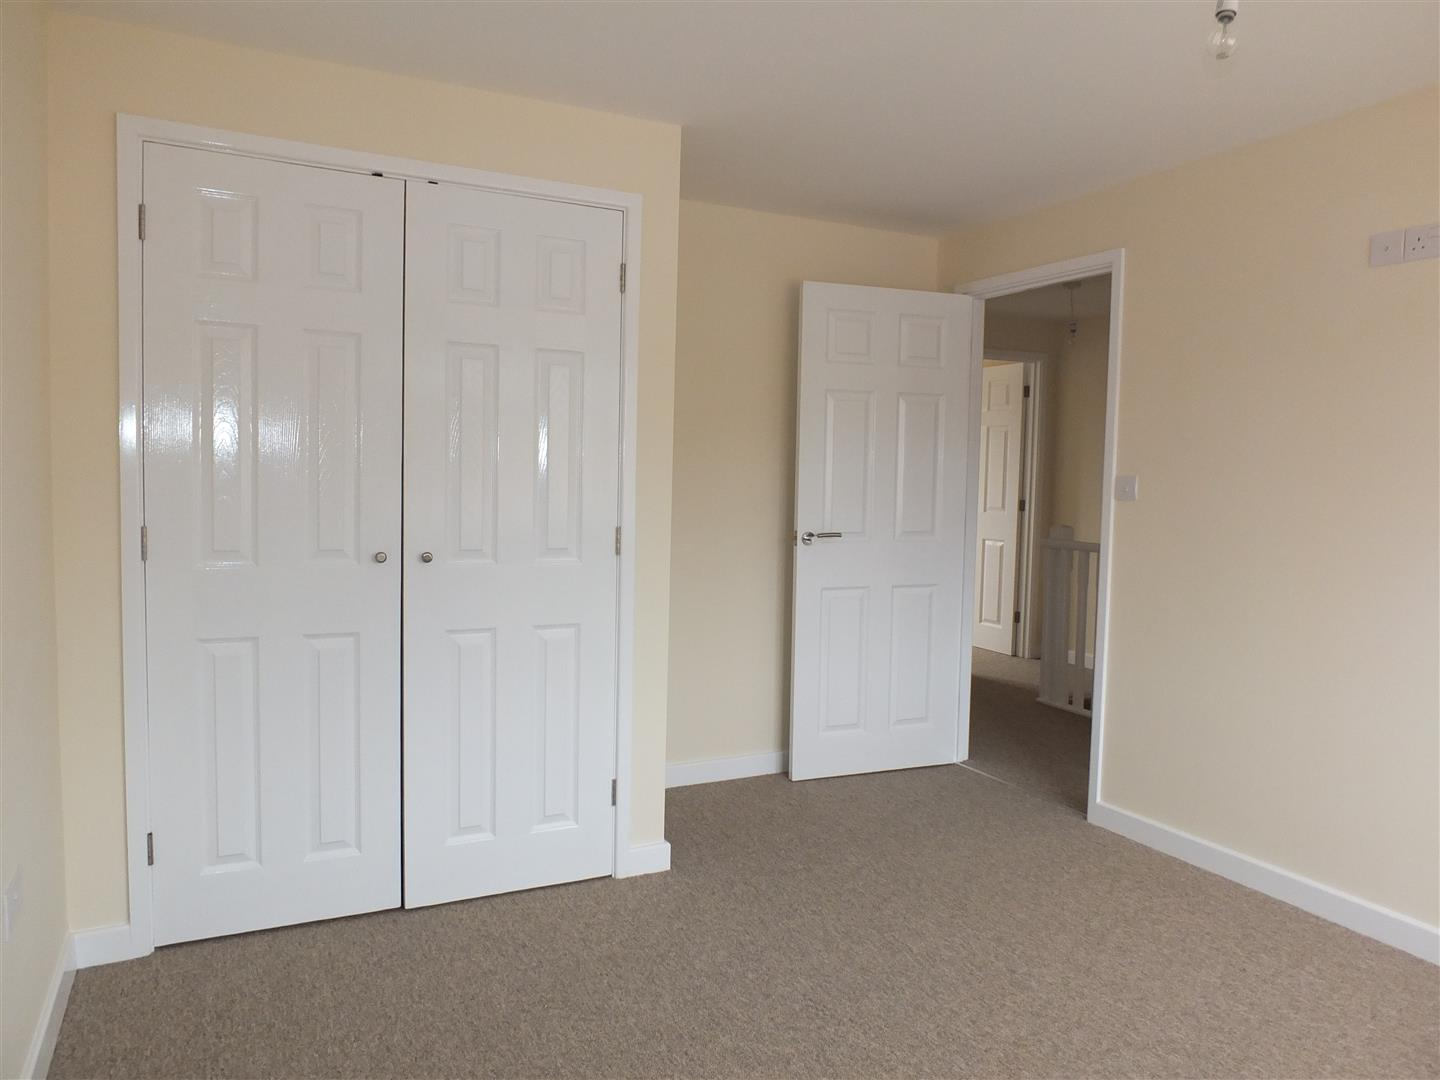 3 bed house to rent in Long Sutton, PE12 9LE 2